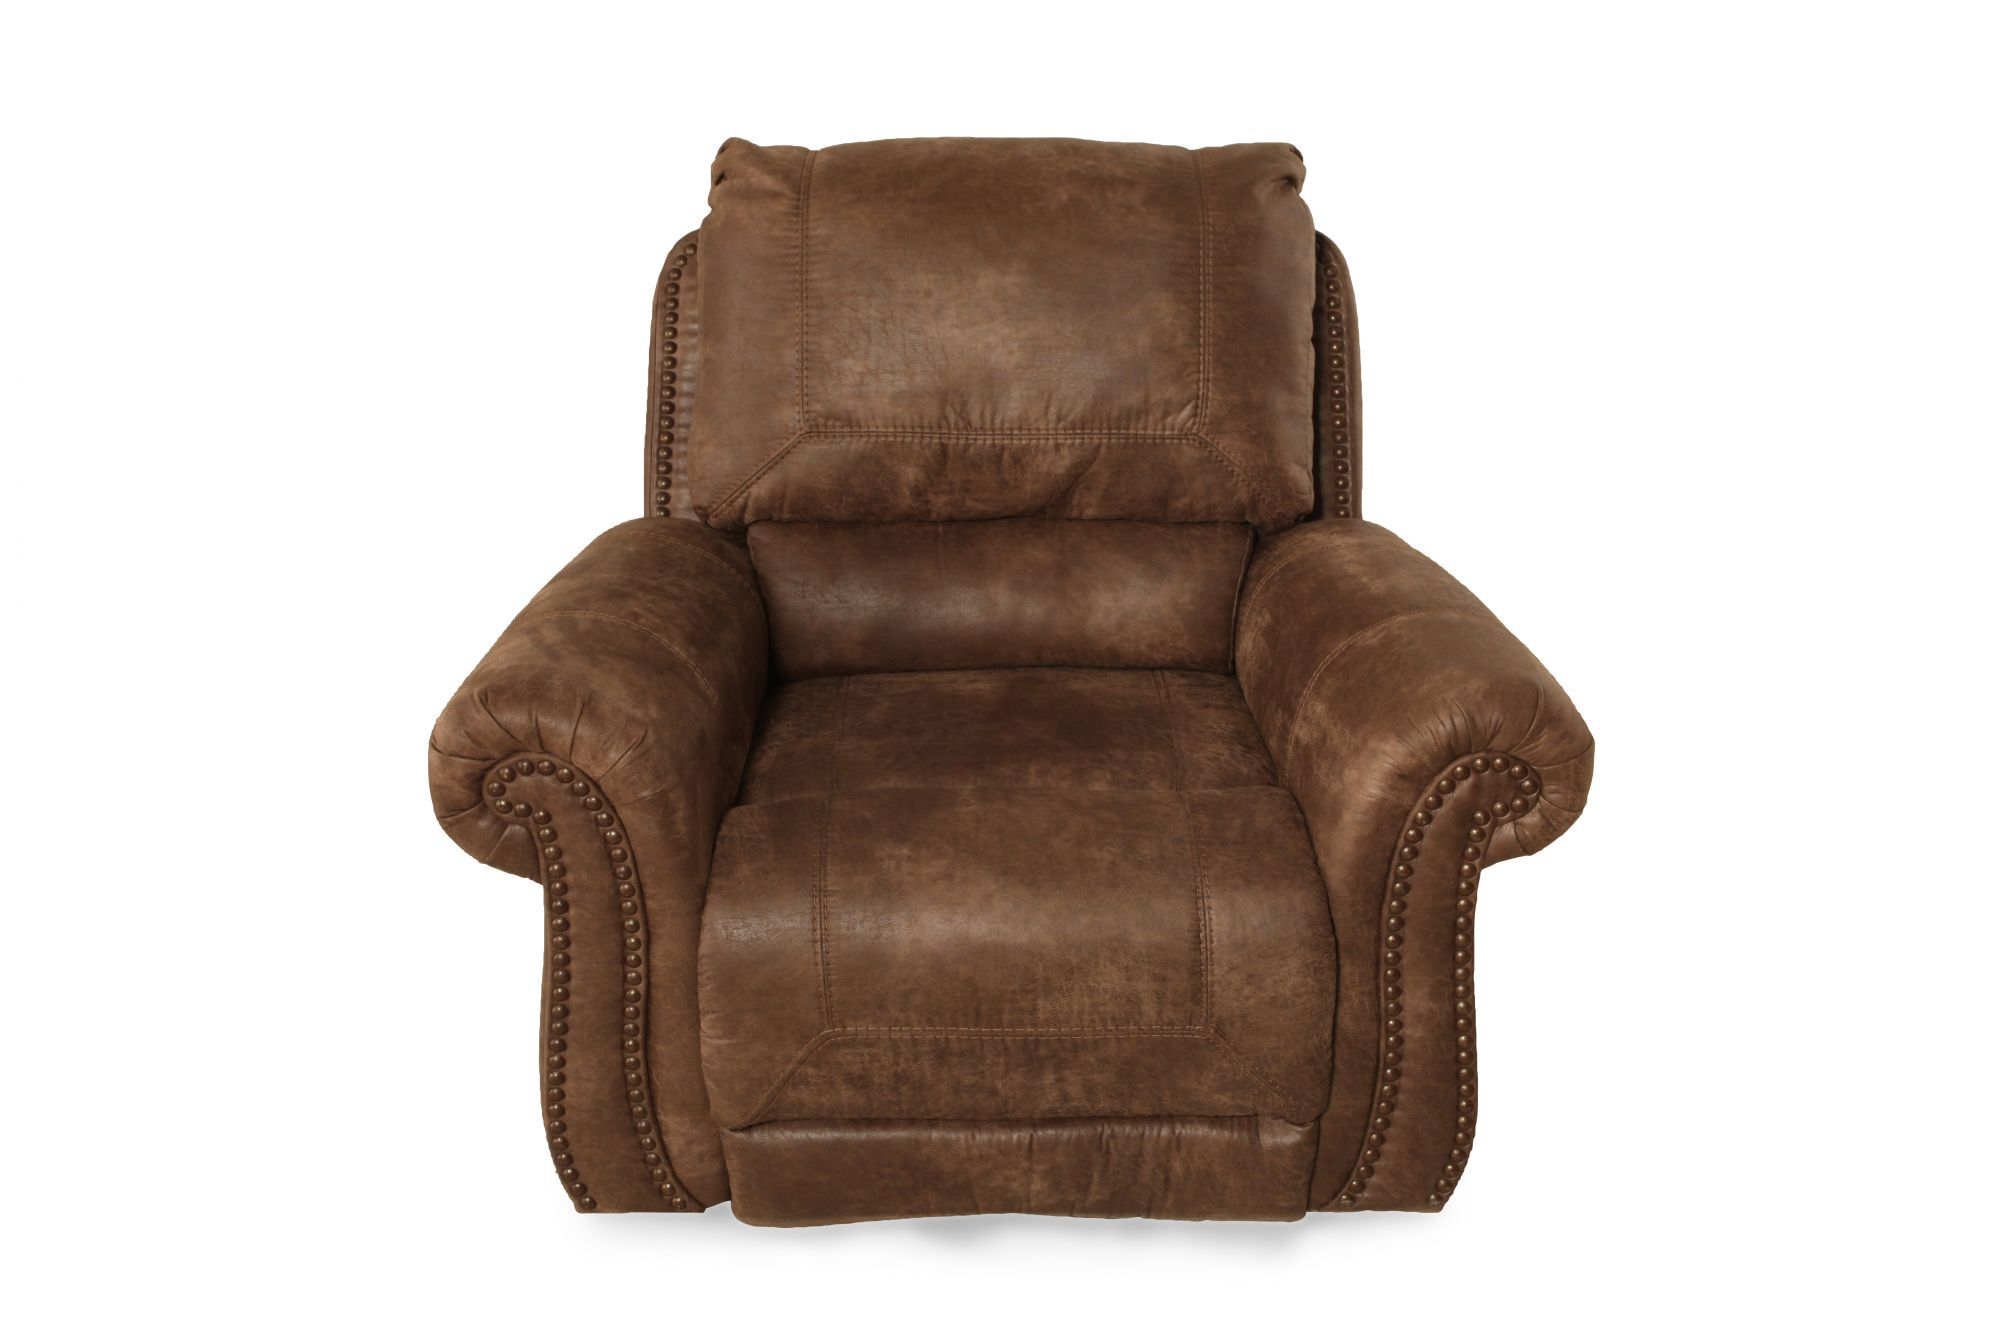 Ashley Oberson Swivel Glider Recliner ...  sc 1 st  Mathis Brothers & Recliners - Reclining Chairs u0026 Sofas | Mathis Brothers islam-shia.org